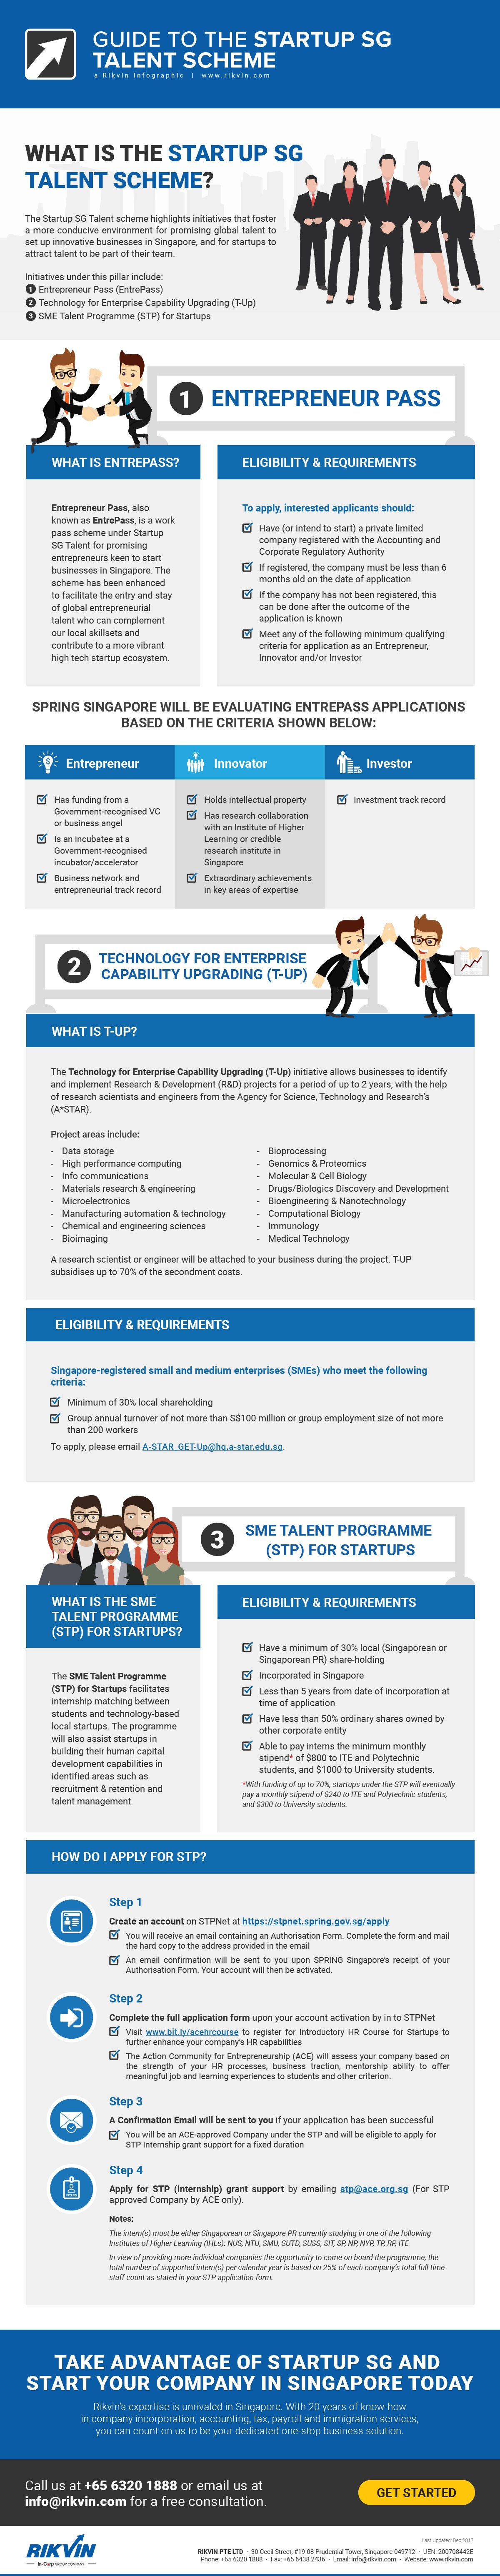 guide-to-the-startup-sg-talent-scheme Guide to the Startup SG Talent Scheme